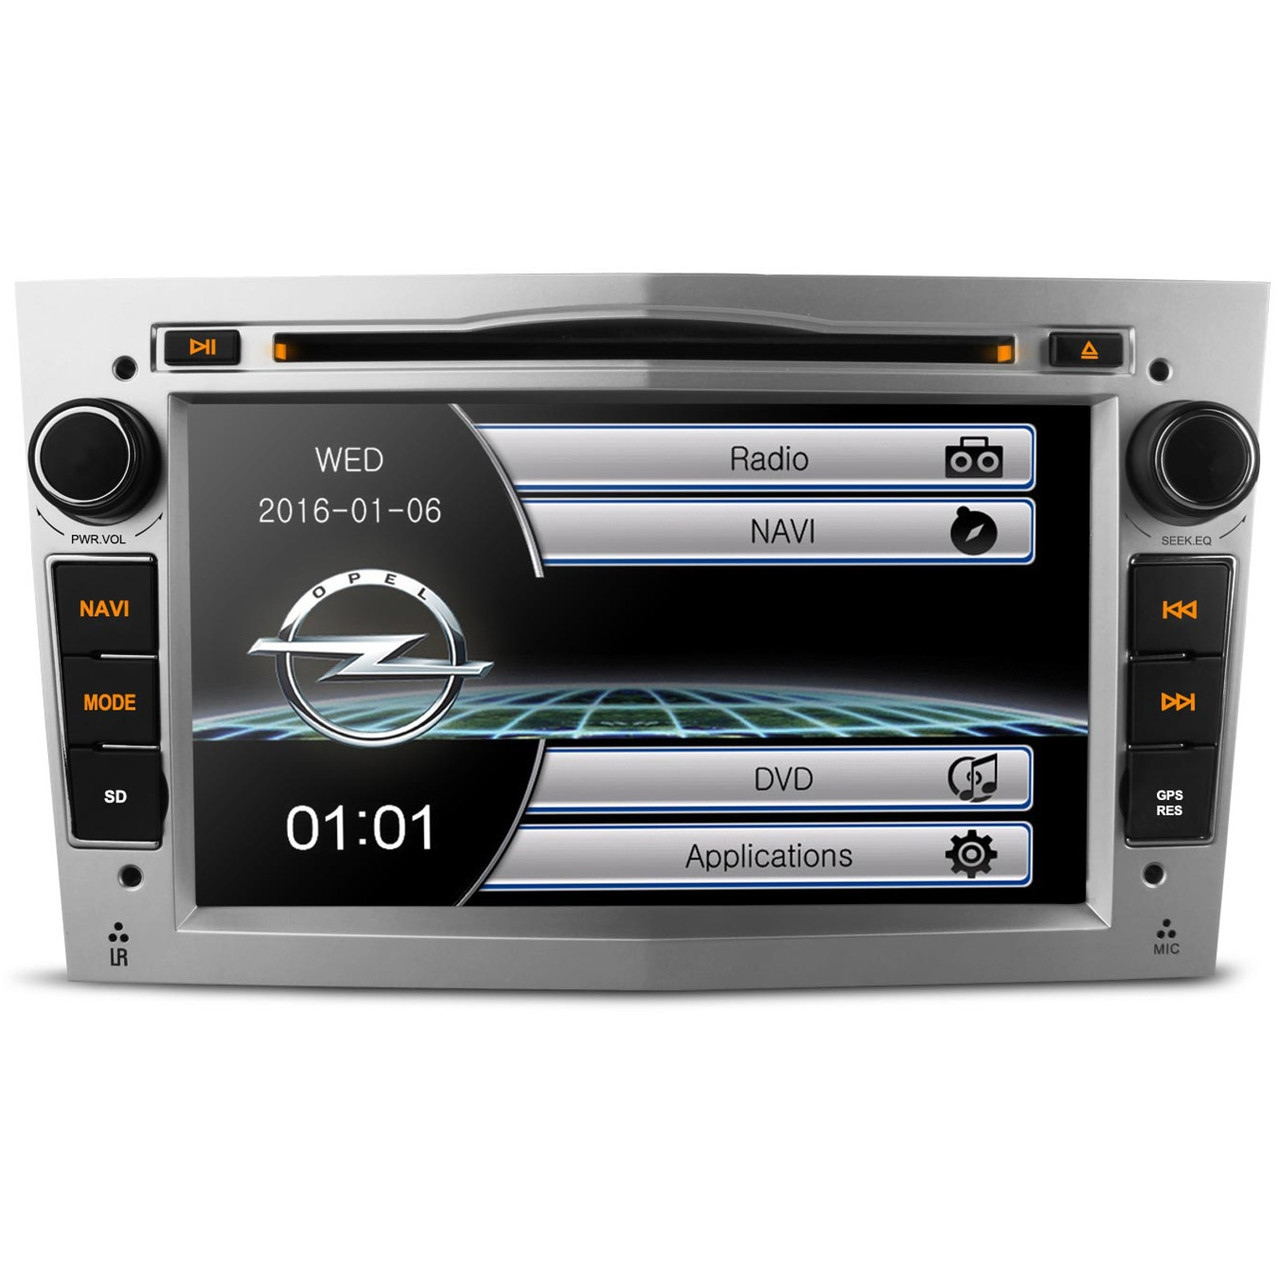 silver vauxhall corsa d oem style ui stereo kudos satnav. Black Bedroom Furniture Sets. Home Design Ideas